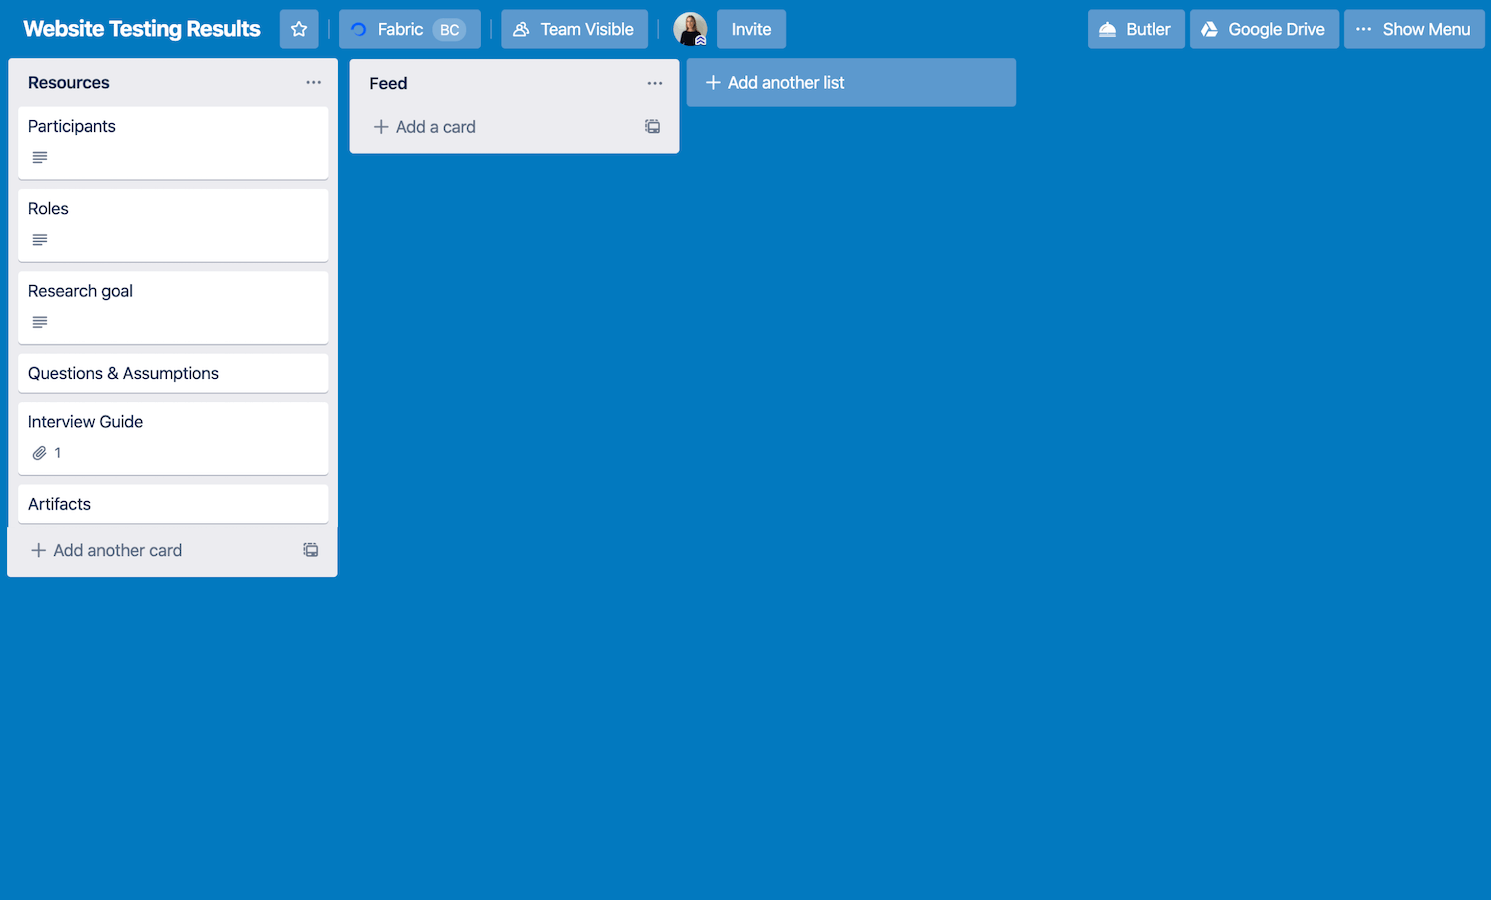 Trello board with Resources and Feed lanes